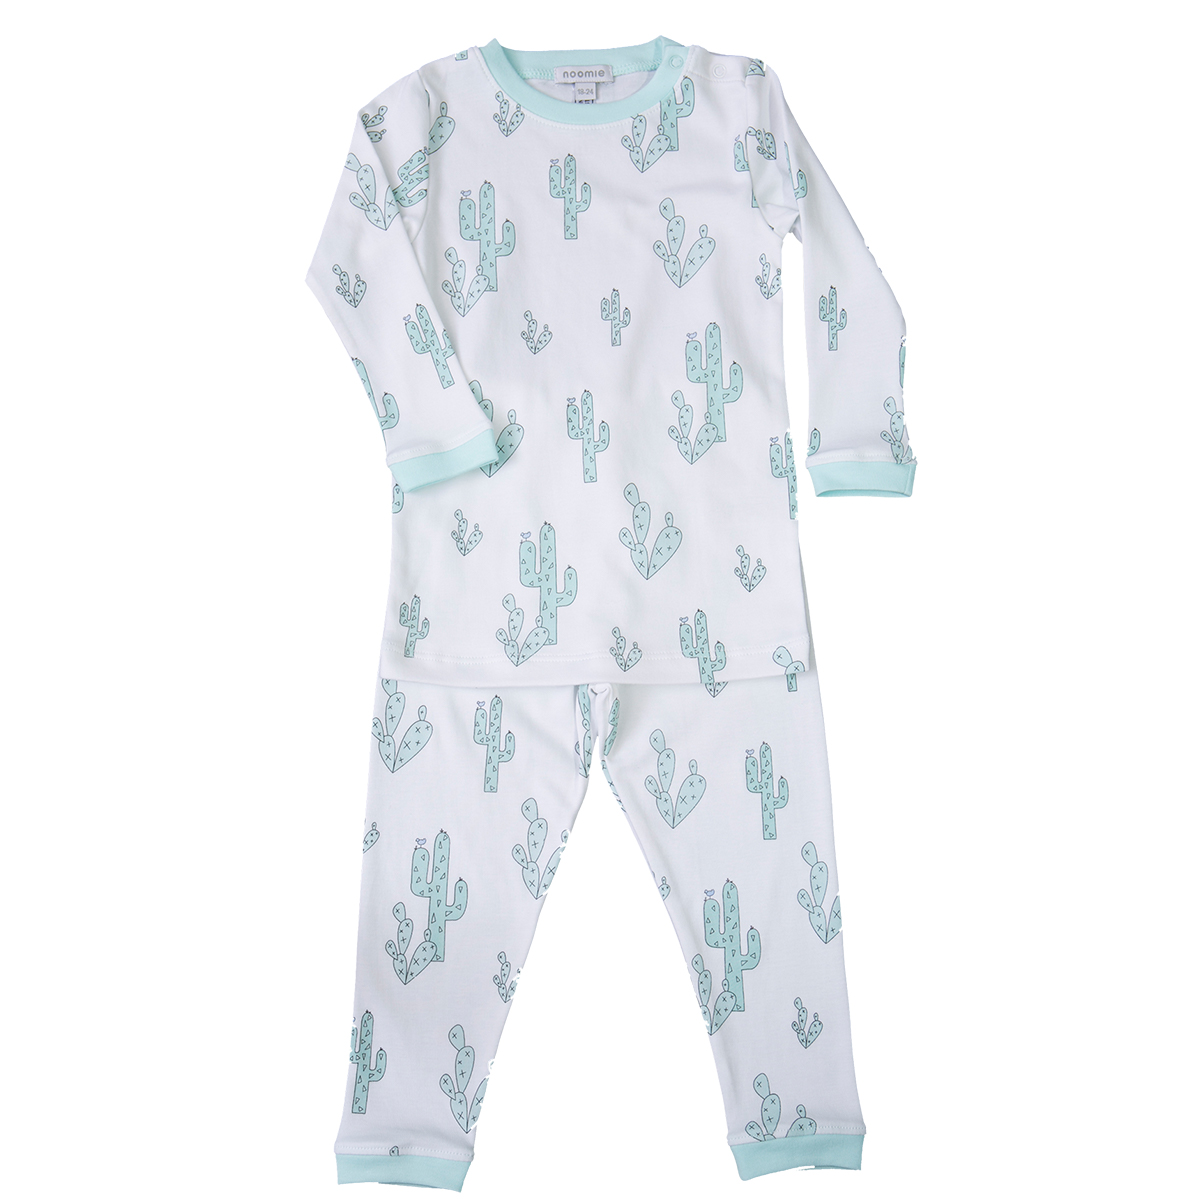 Baby Noomie Two Piece PJ - Green Cactus